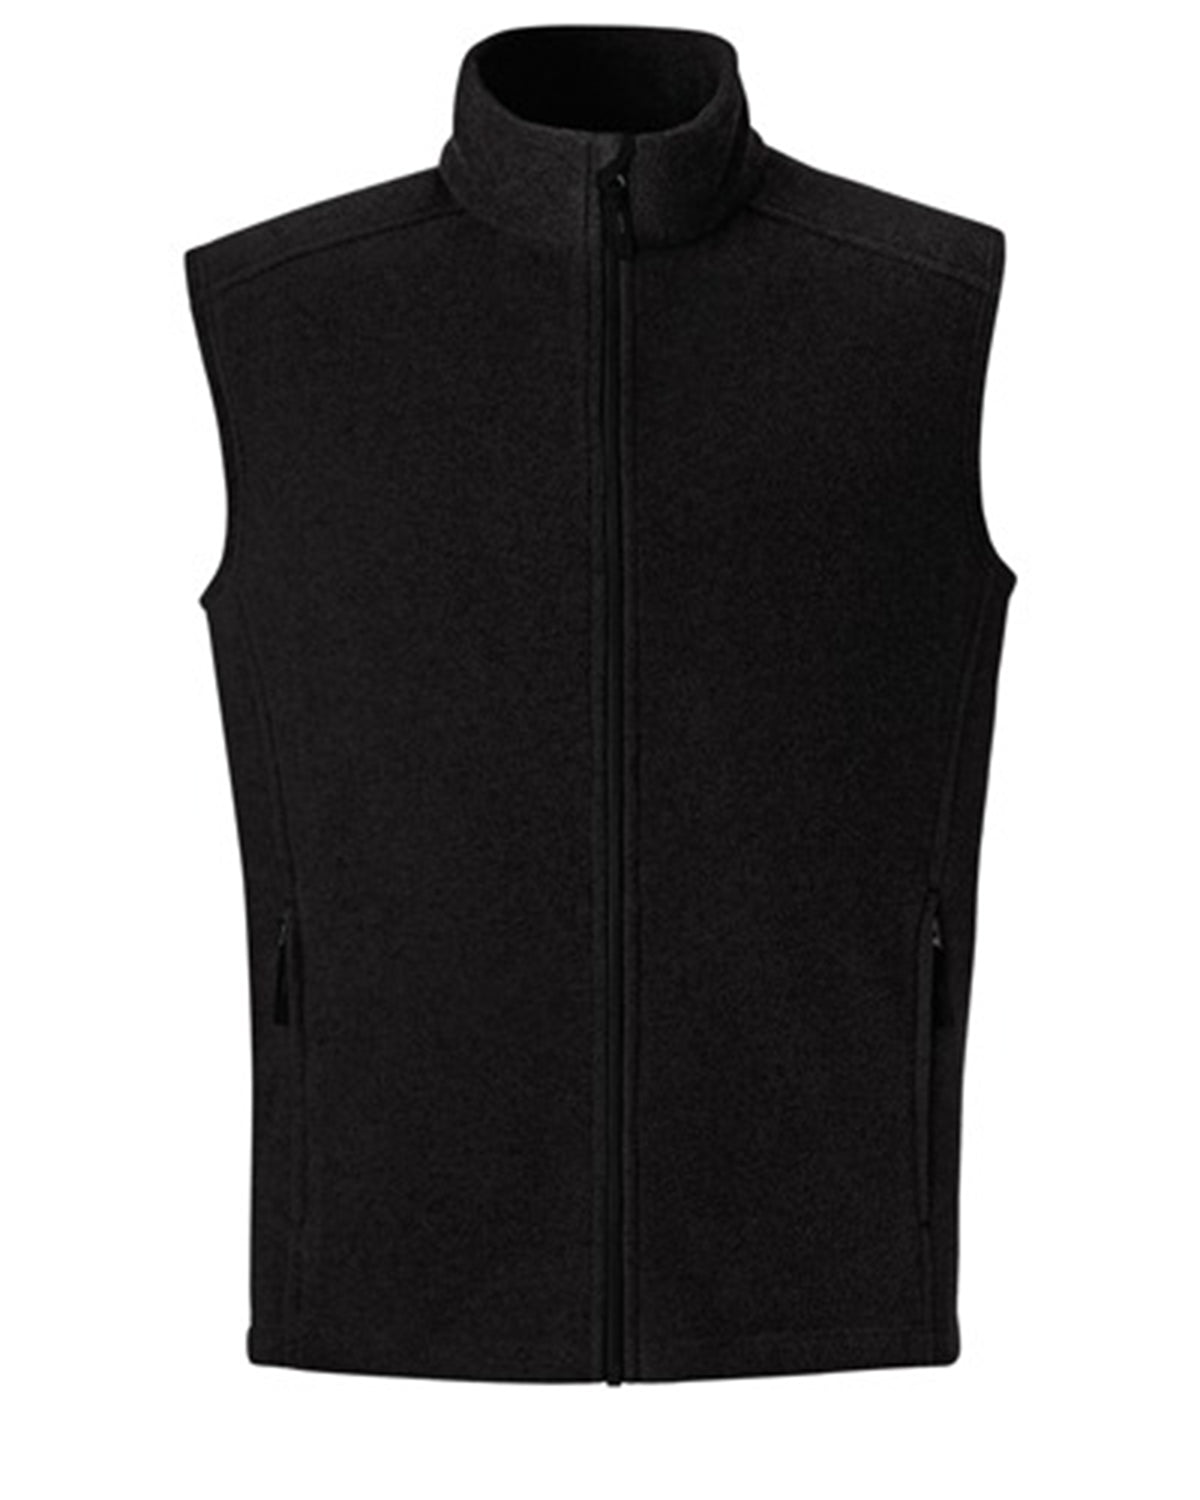 CORE 365 MEN'S JOURNEY FLEECE VEST